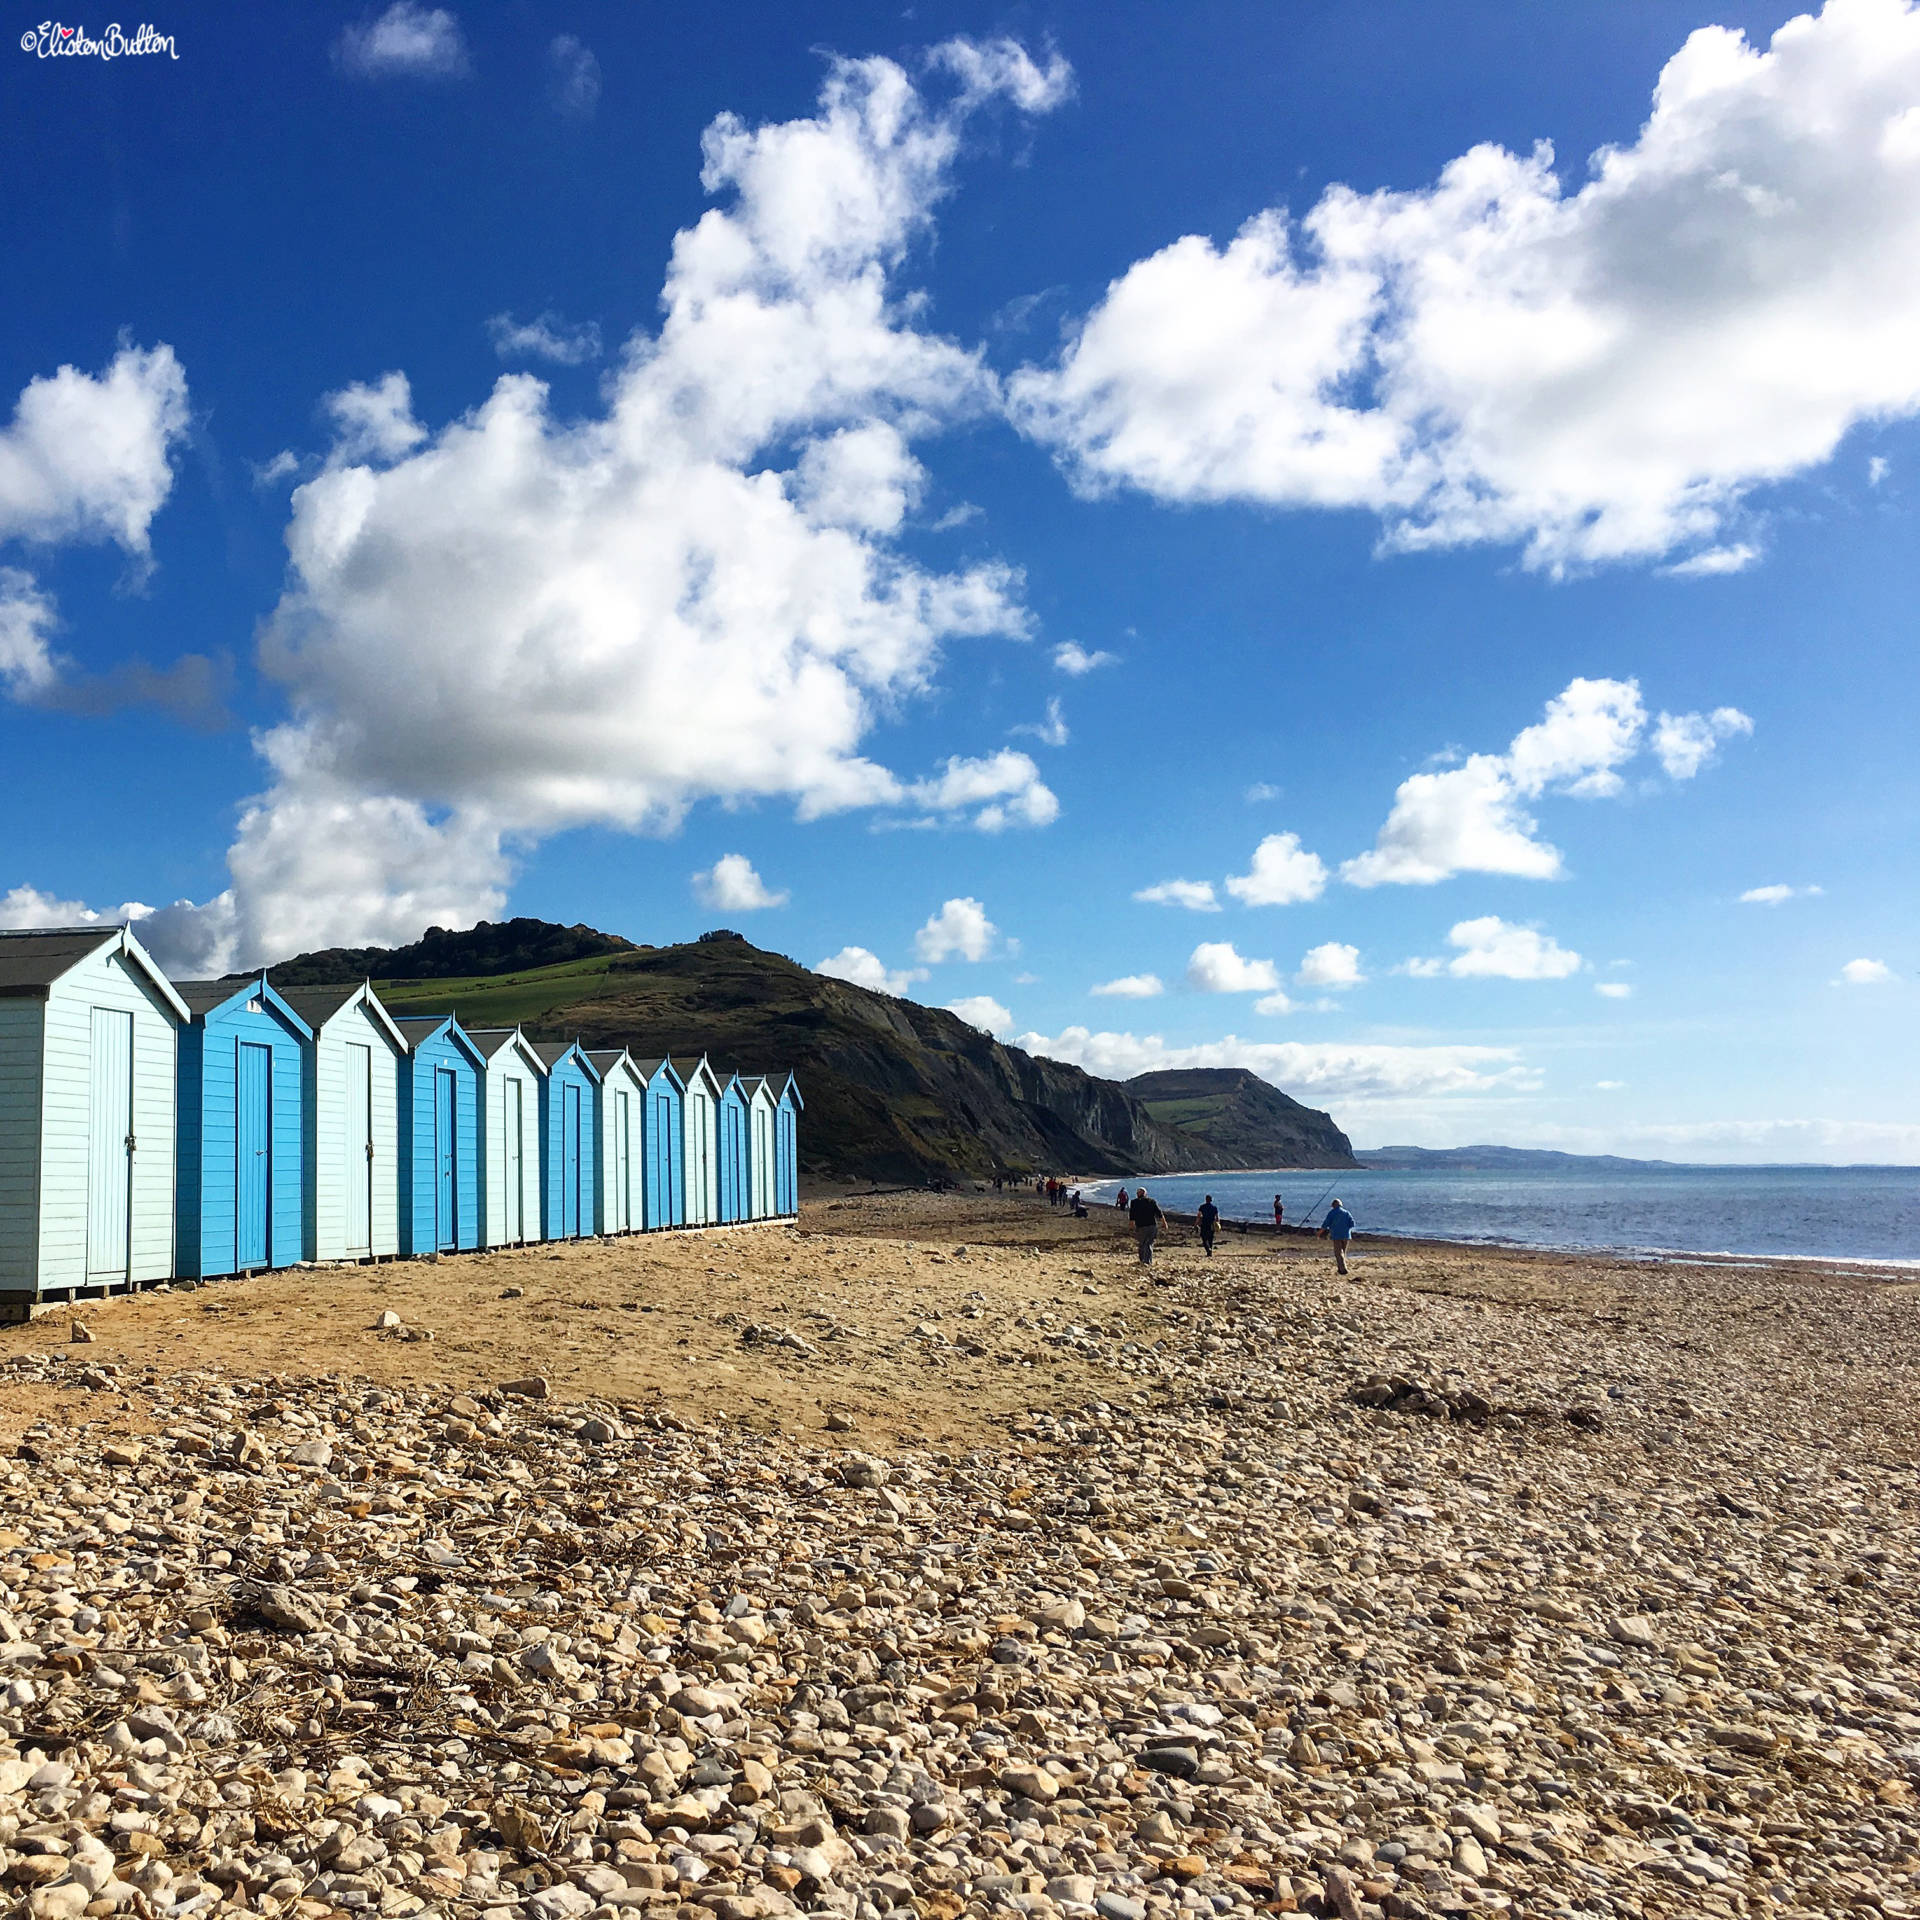 Beach Huts on the Beach at Charmouth - For the Love of…Summer at www.elistonbutton.com - Eliston Button - That Crafty Kid – Art, Design, Craft & Adventure.